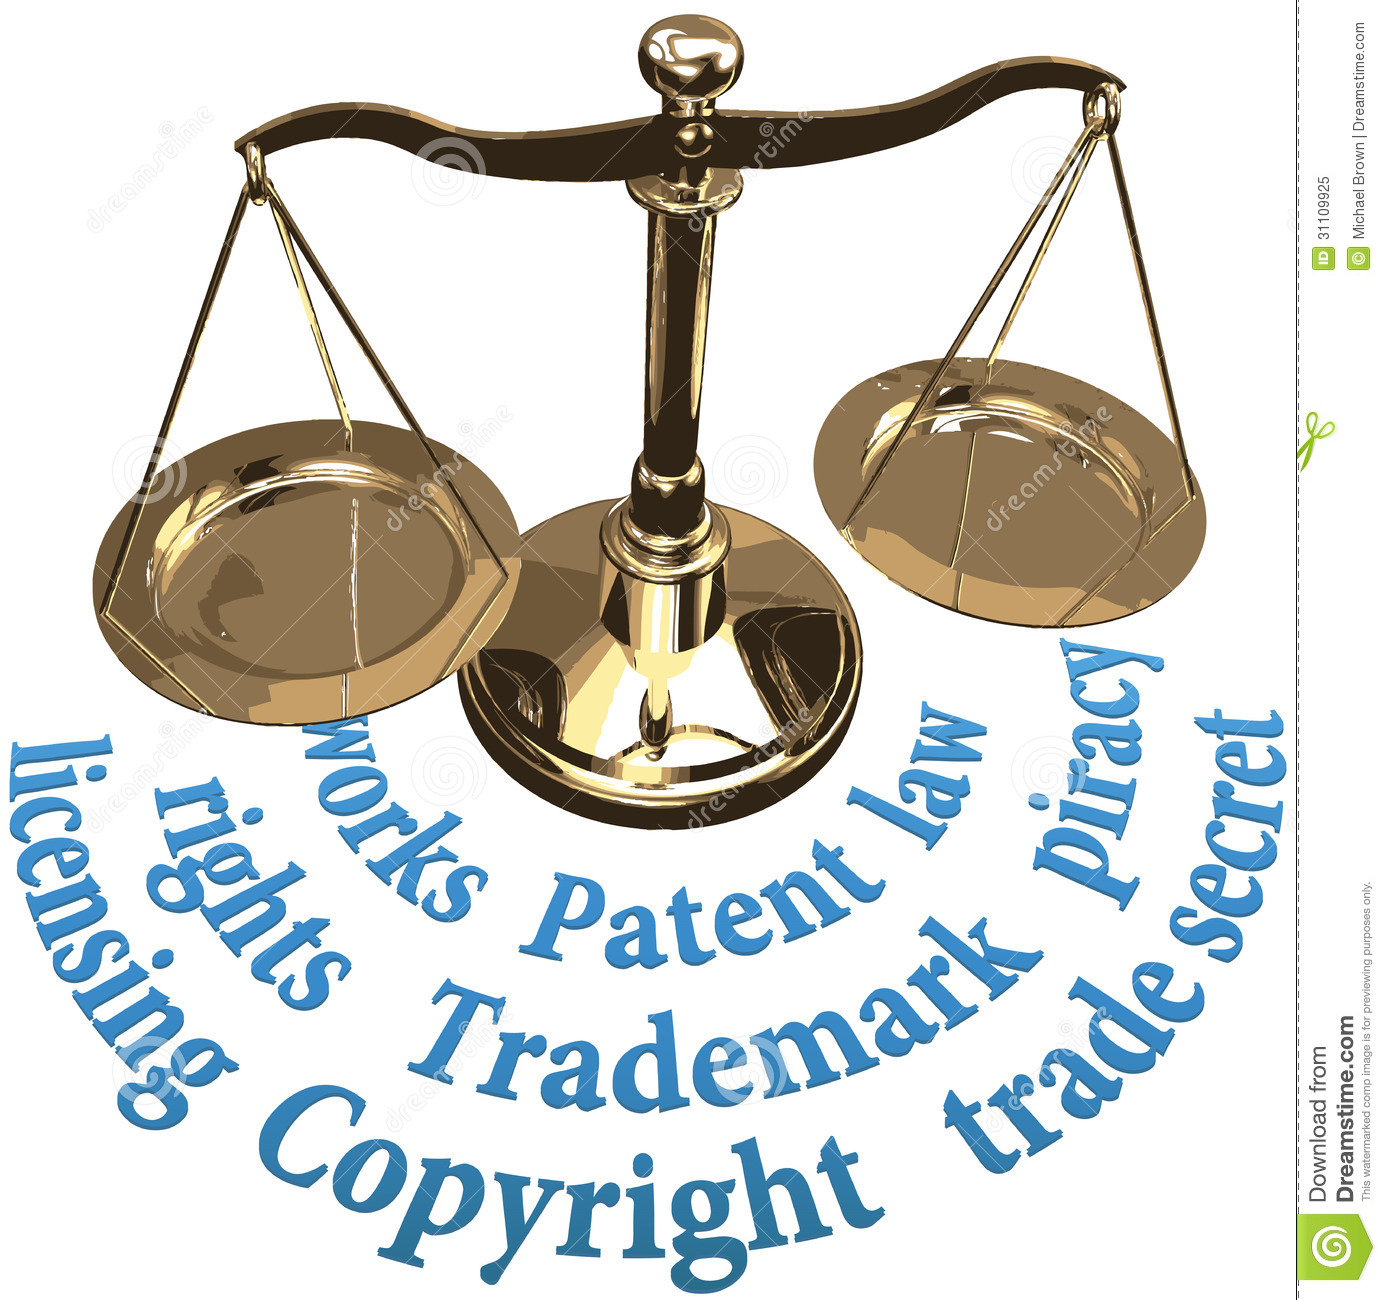 the evolution of the concept of intellectual property rights Always offer first those appropriate paragraphs that preserve for the university the most rights in intellectual property skip to main content search terms uts intellectual property rights sample clauses concept, or idea, whether or not patentable.